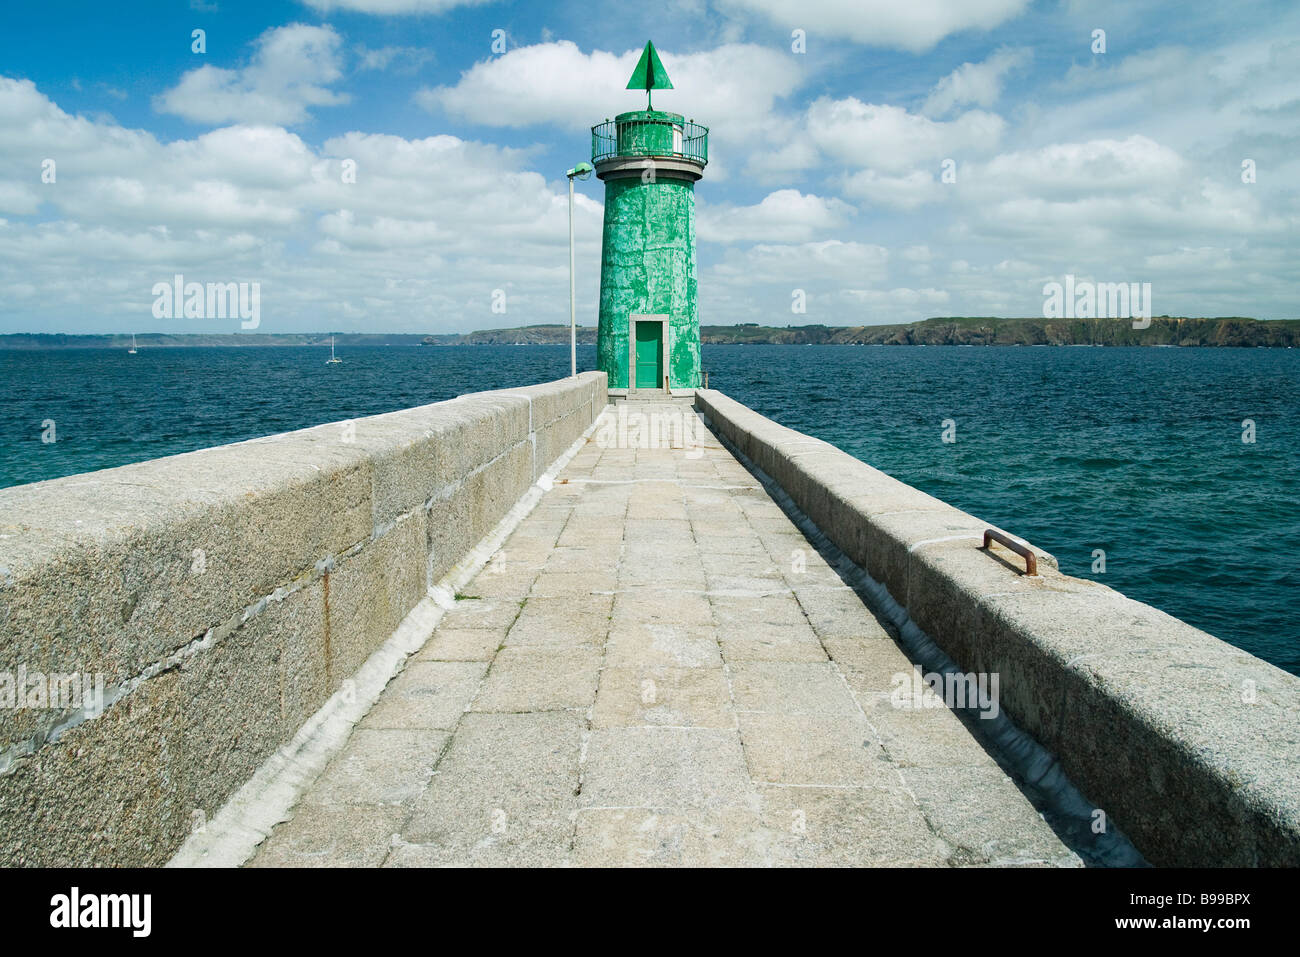 Lighthouse at end of sea wall, Camaret-sur-Mer, Brittany, France - Stock Image